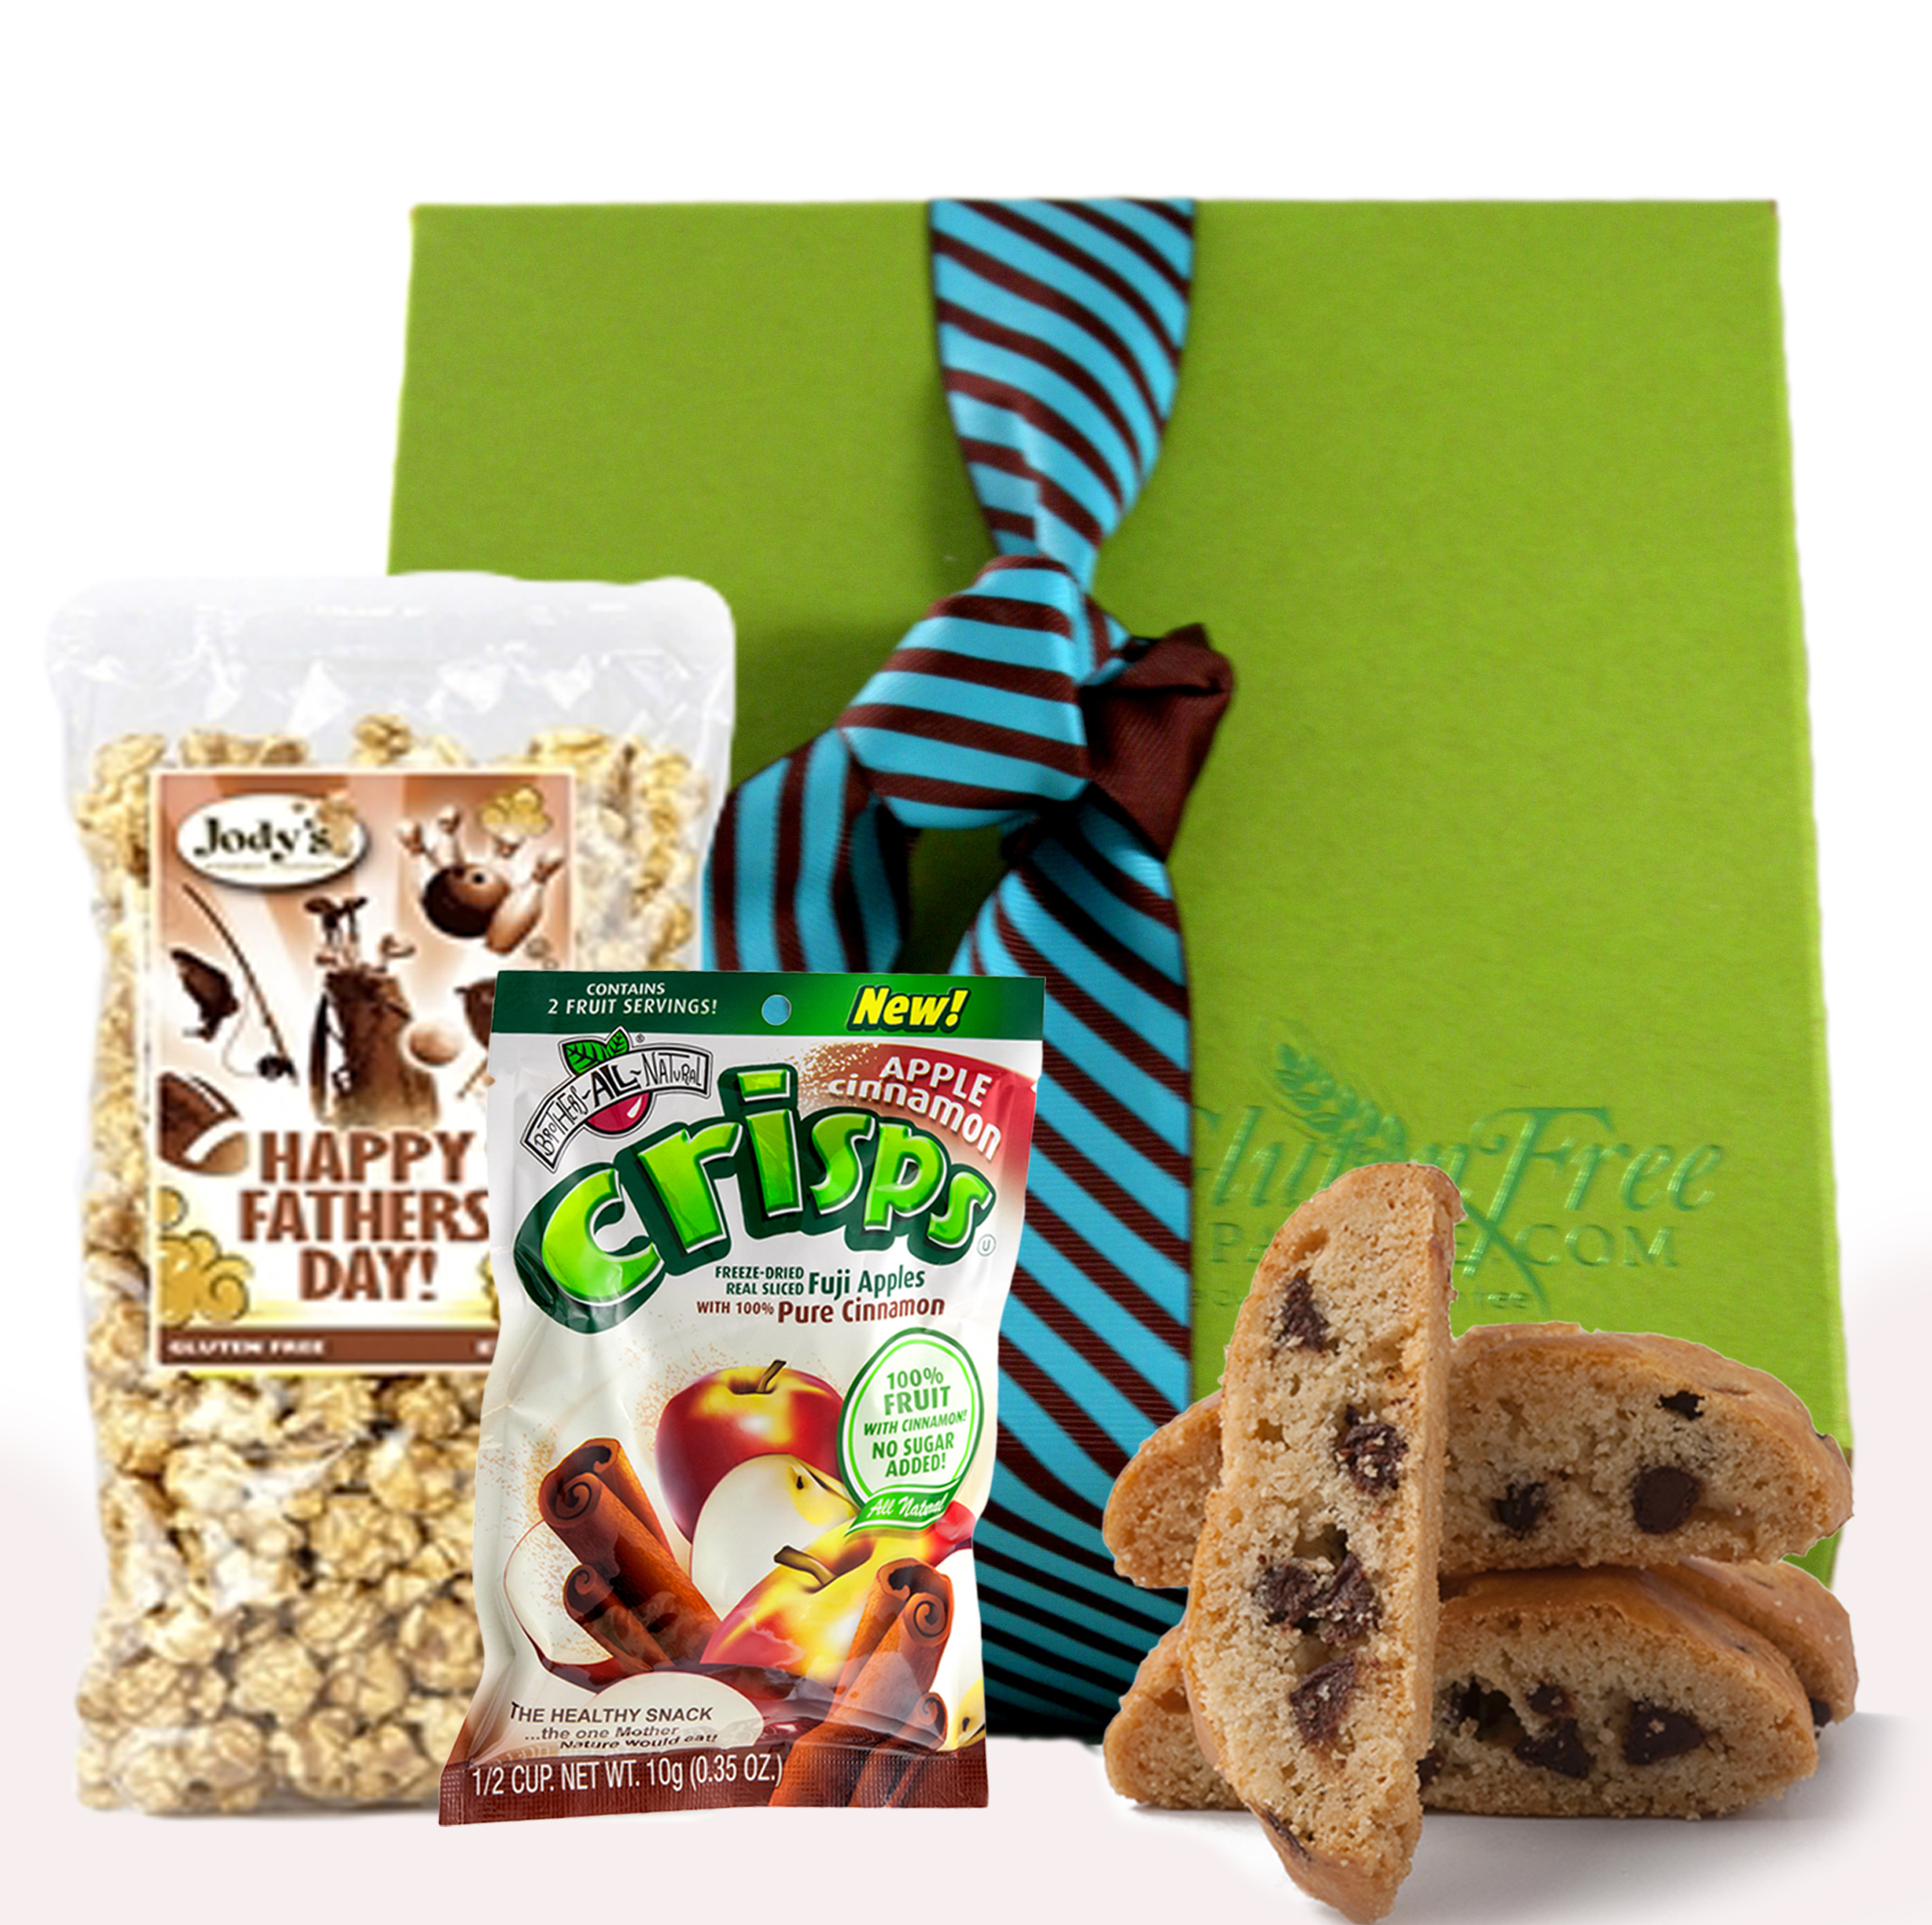 Gluten Free Palace You're My Big Man! Father's Day Gluten Free Gift Box, Large, 1 Lb.